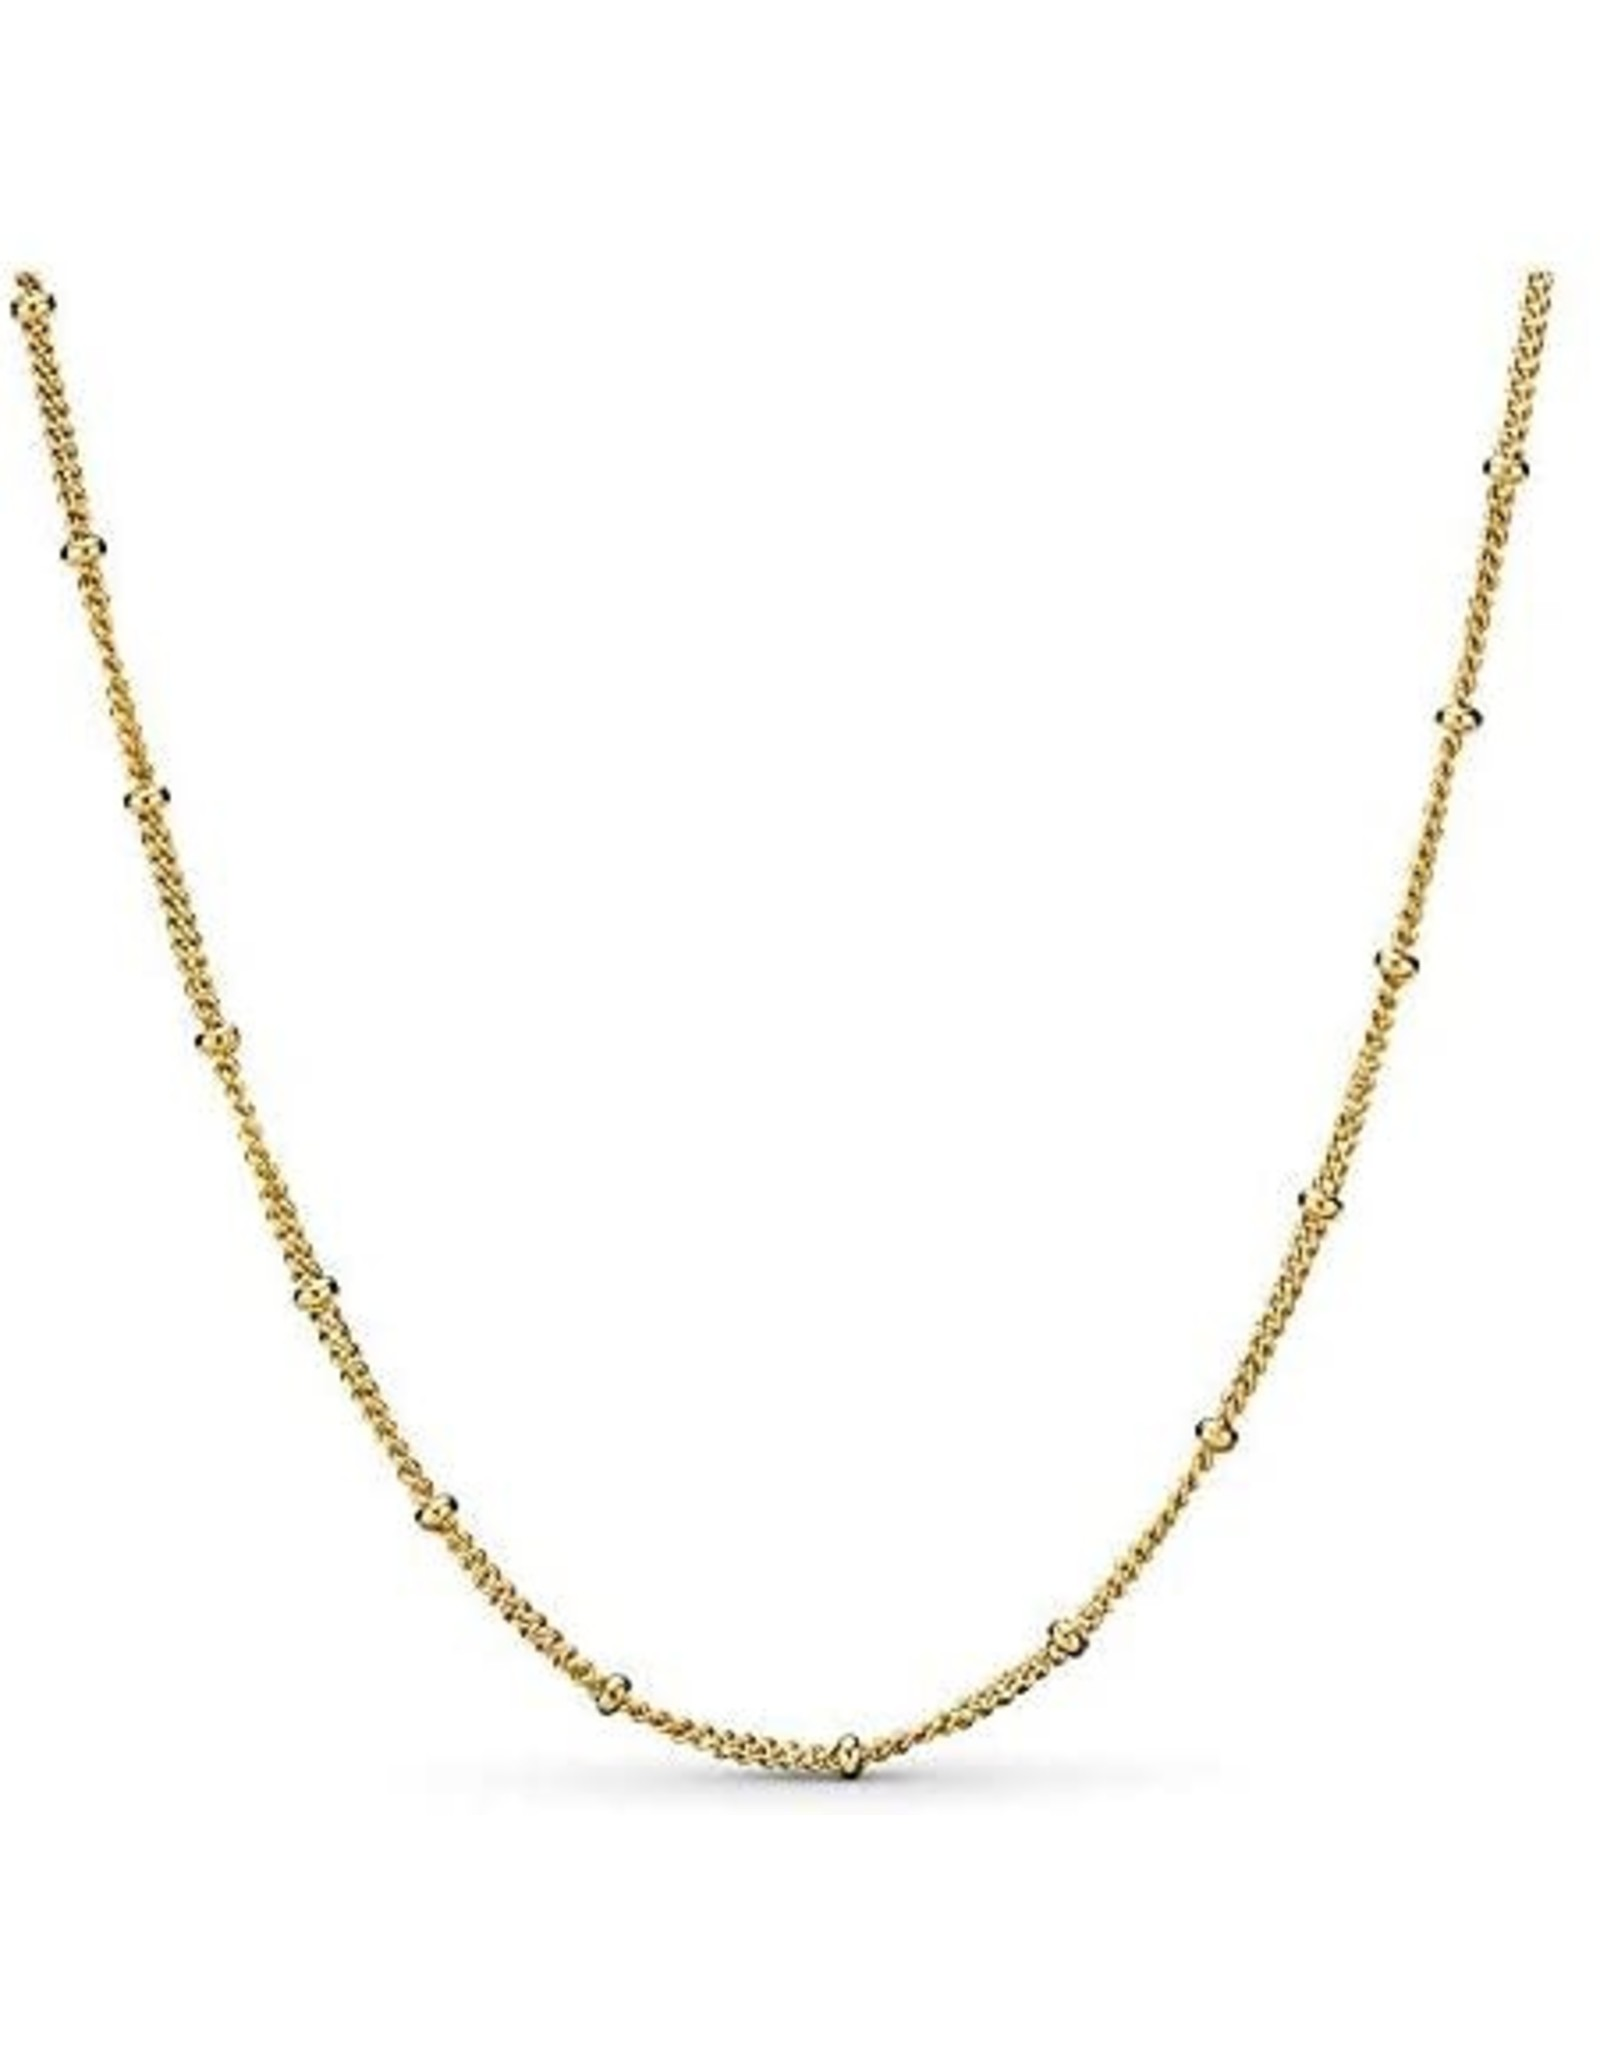 Pandora Pandora Beaded Necklace In Pandora Shine 70 cm, Adjustable To 65 cm and 60 cm 70 cm